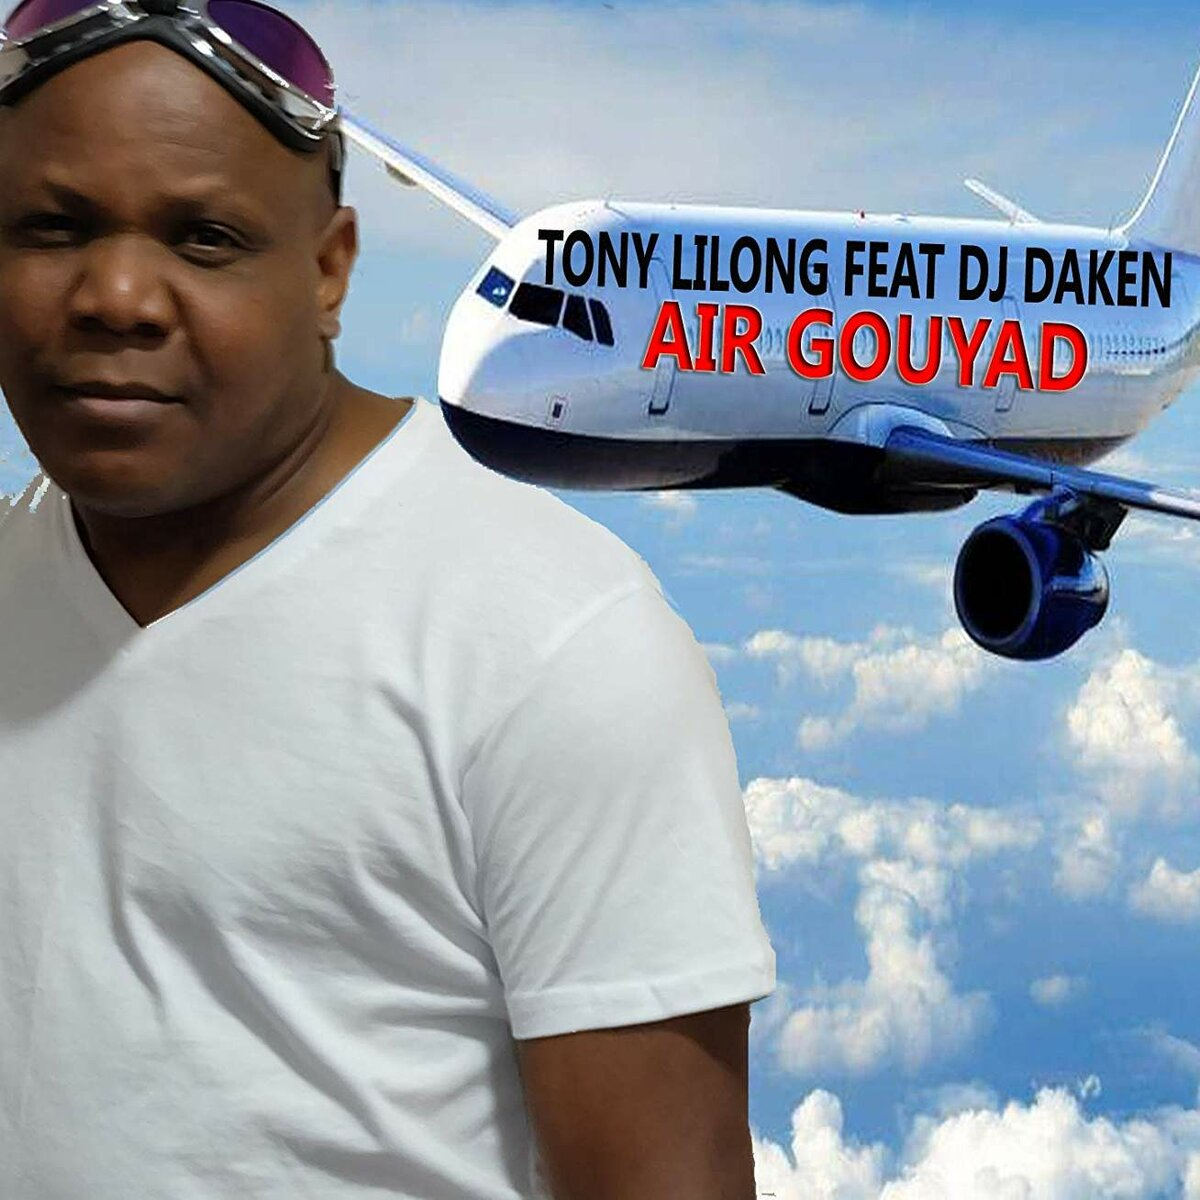 Tony Lilong - Air gouyad.7z  S1200